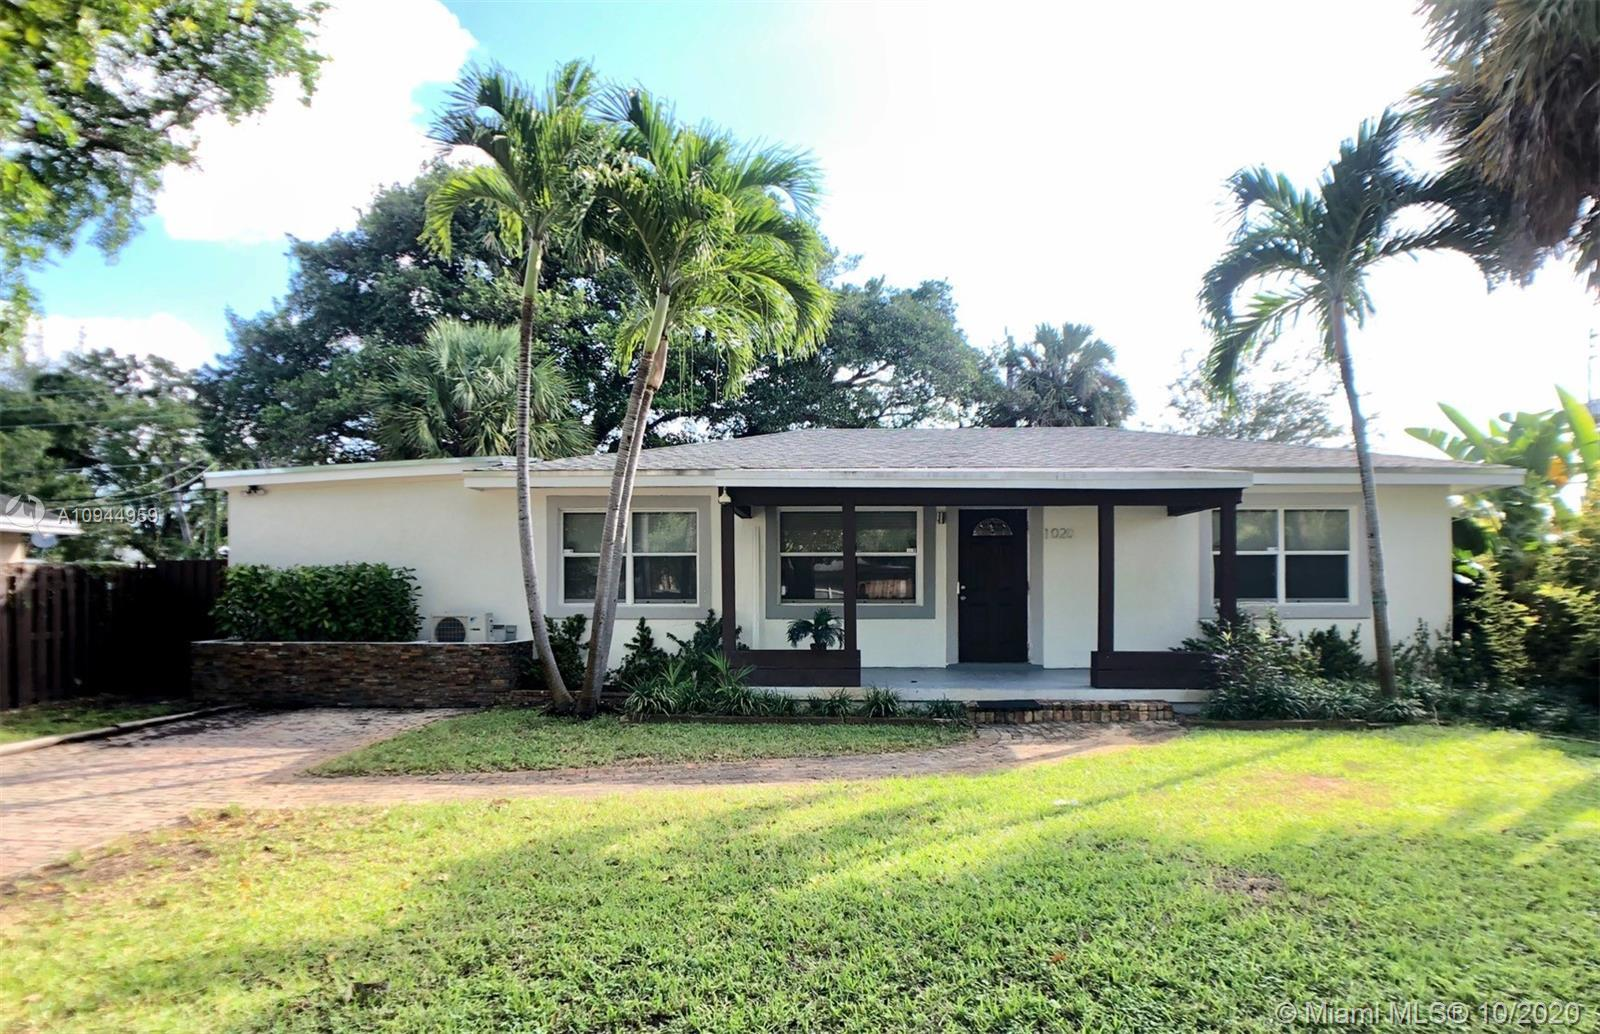 Tenant occupied until 3/31/2021. GORGEOUS remodeled 4 beds 2 baths home close to downtown Fort Laude